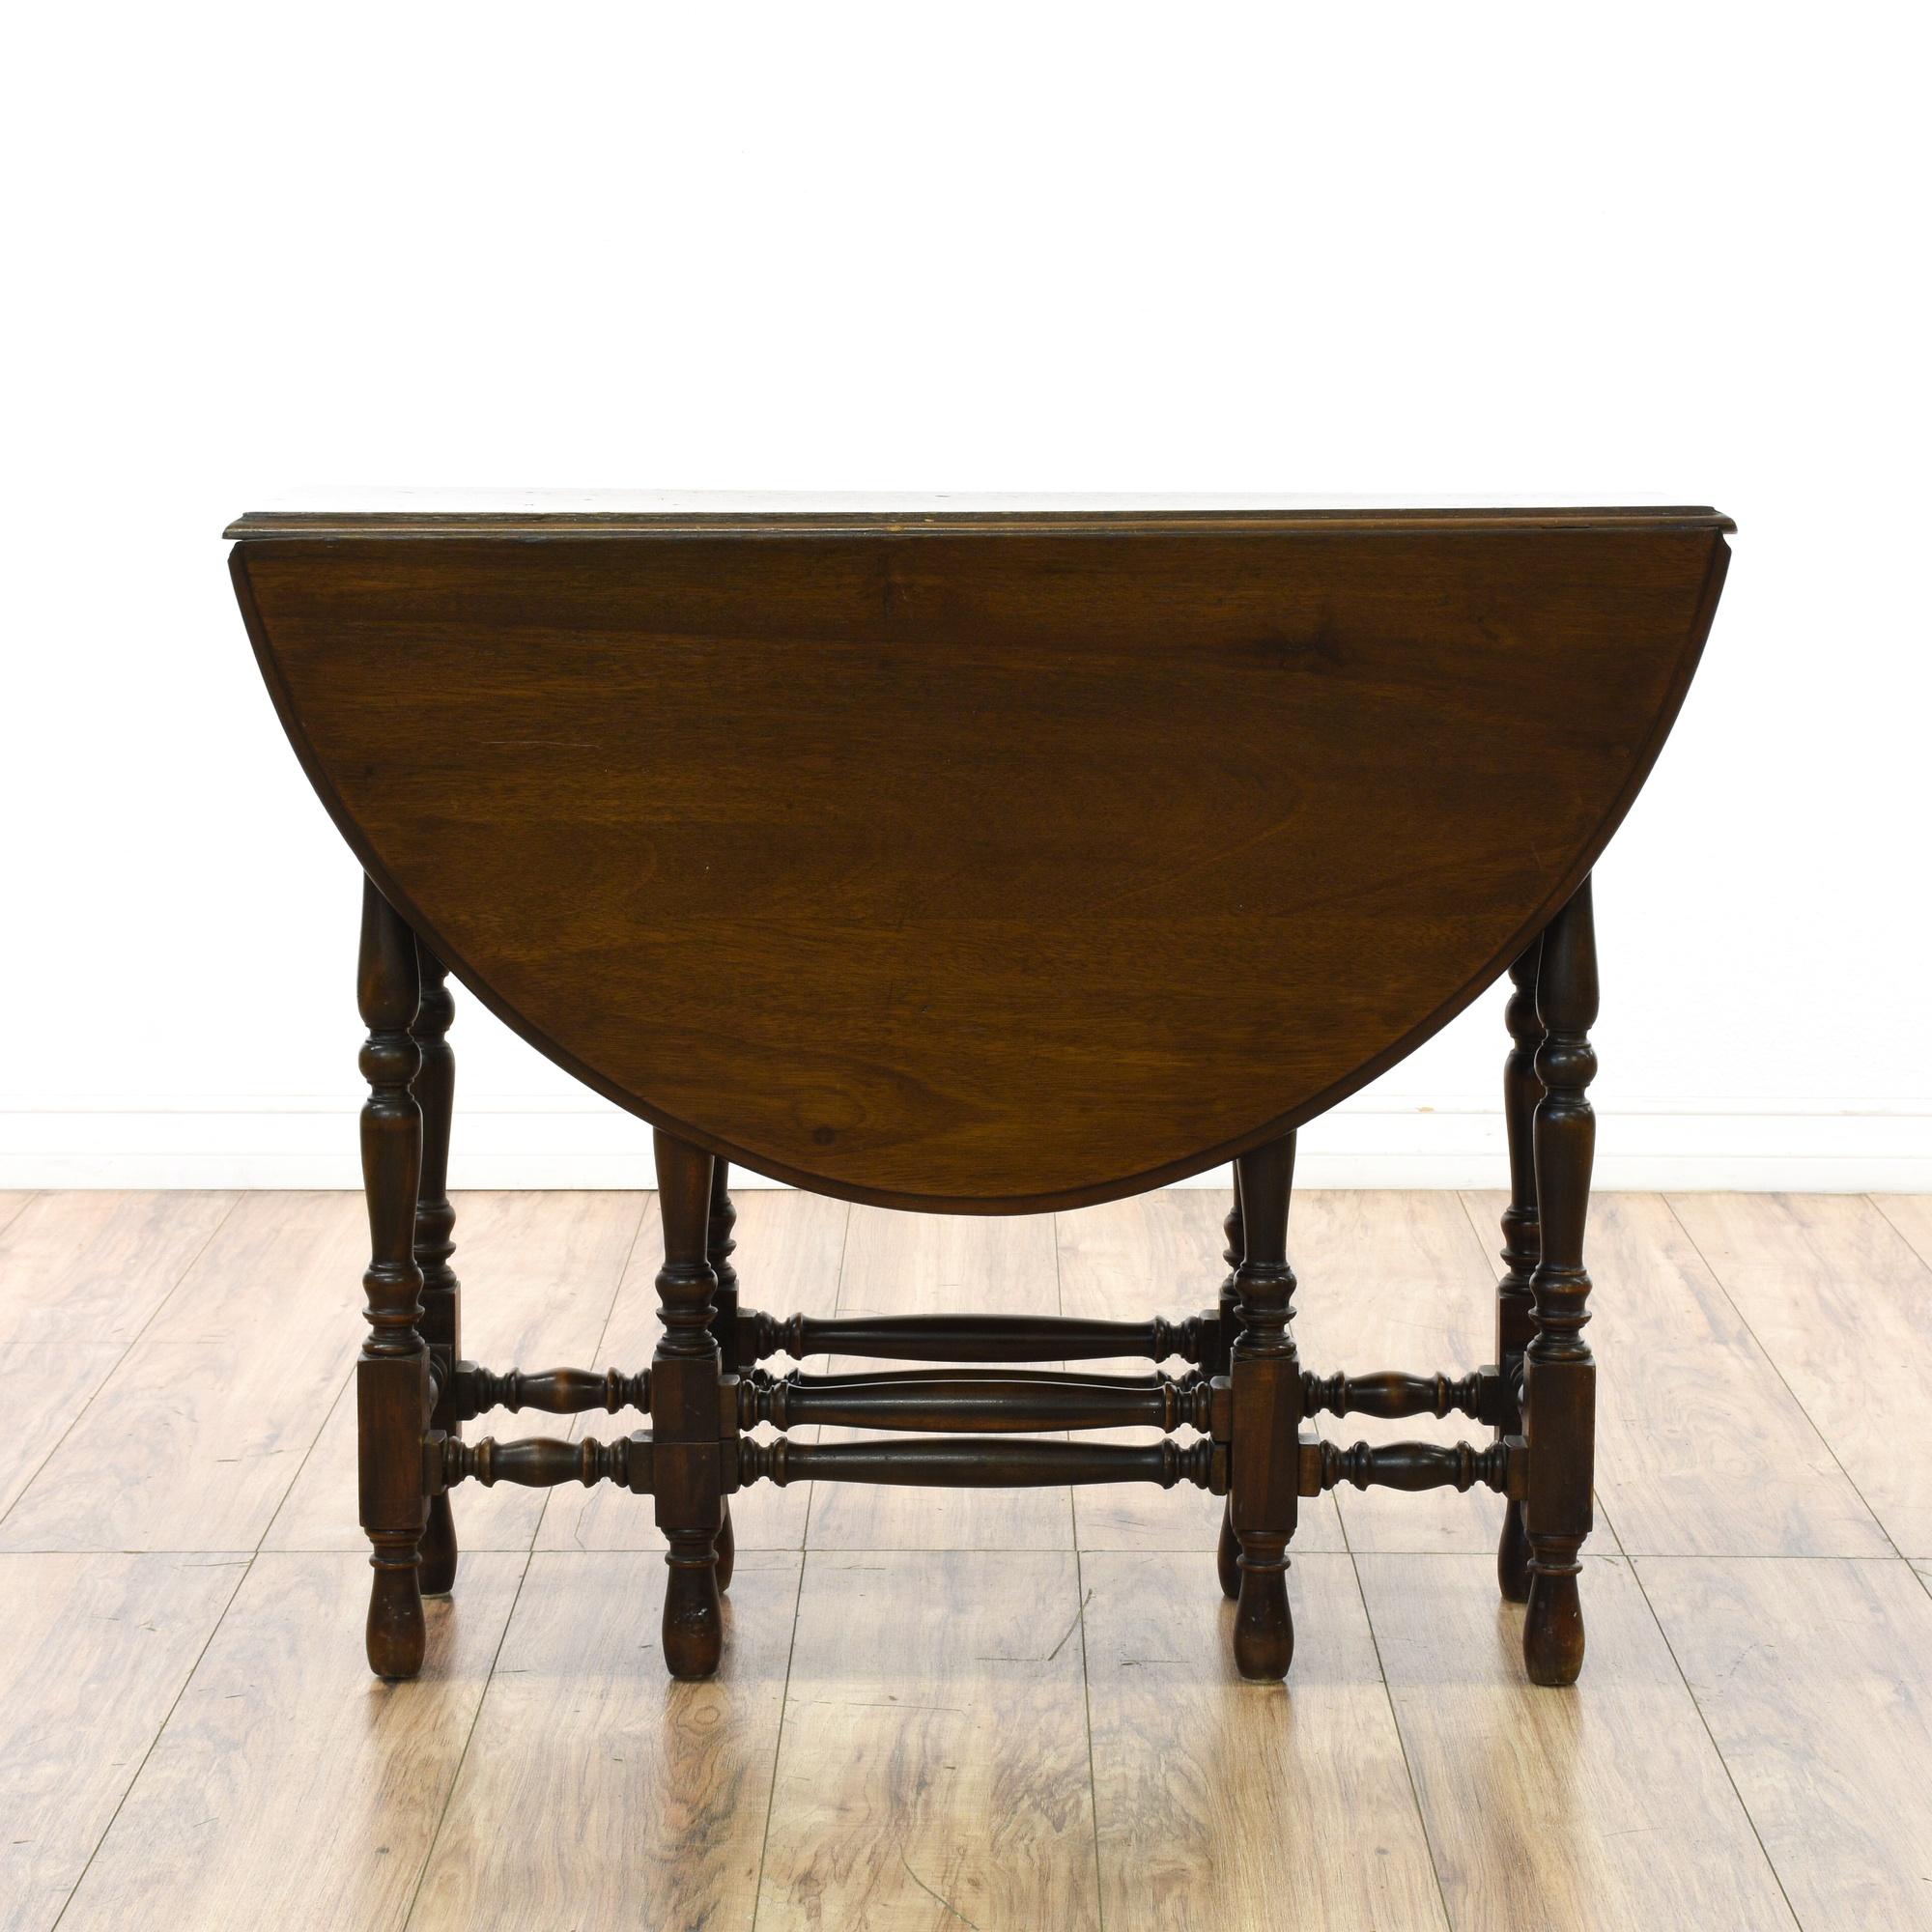 Dining Room Furniture San Diego: Dark Wood Country Farmhouse Drop Leaf Dining Table